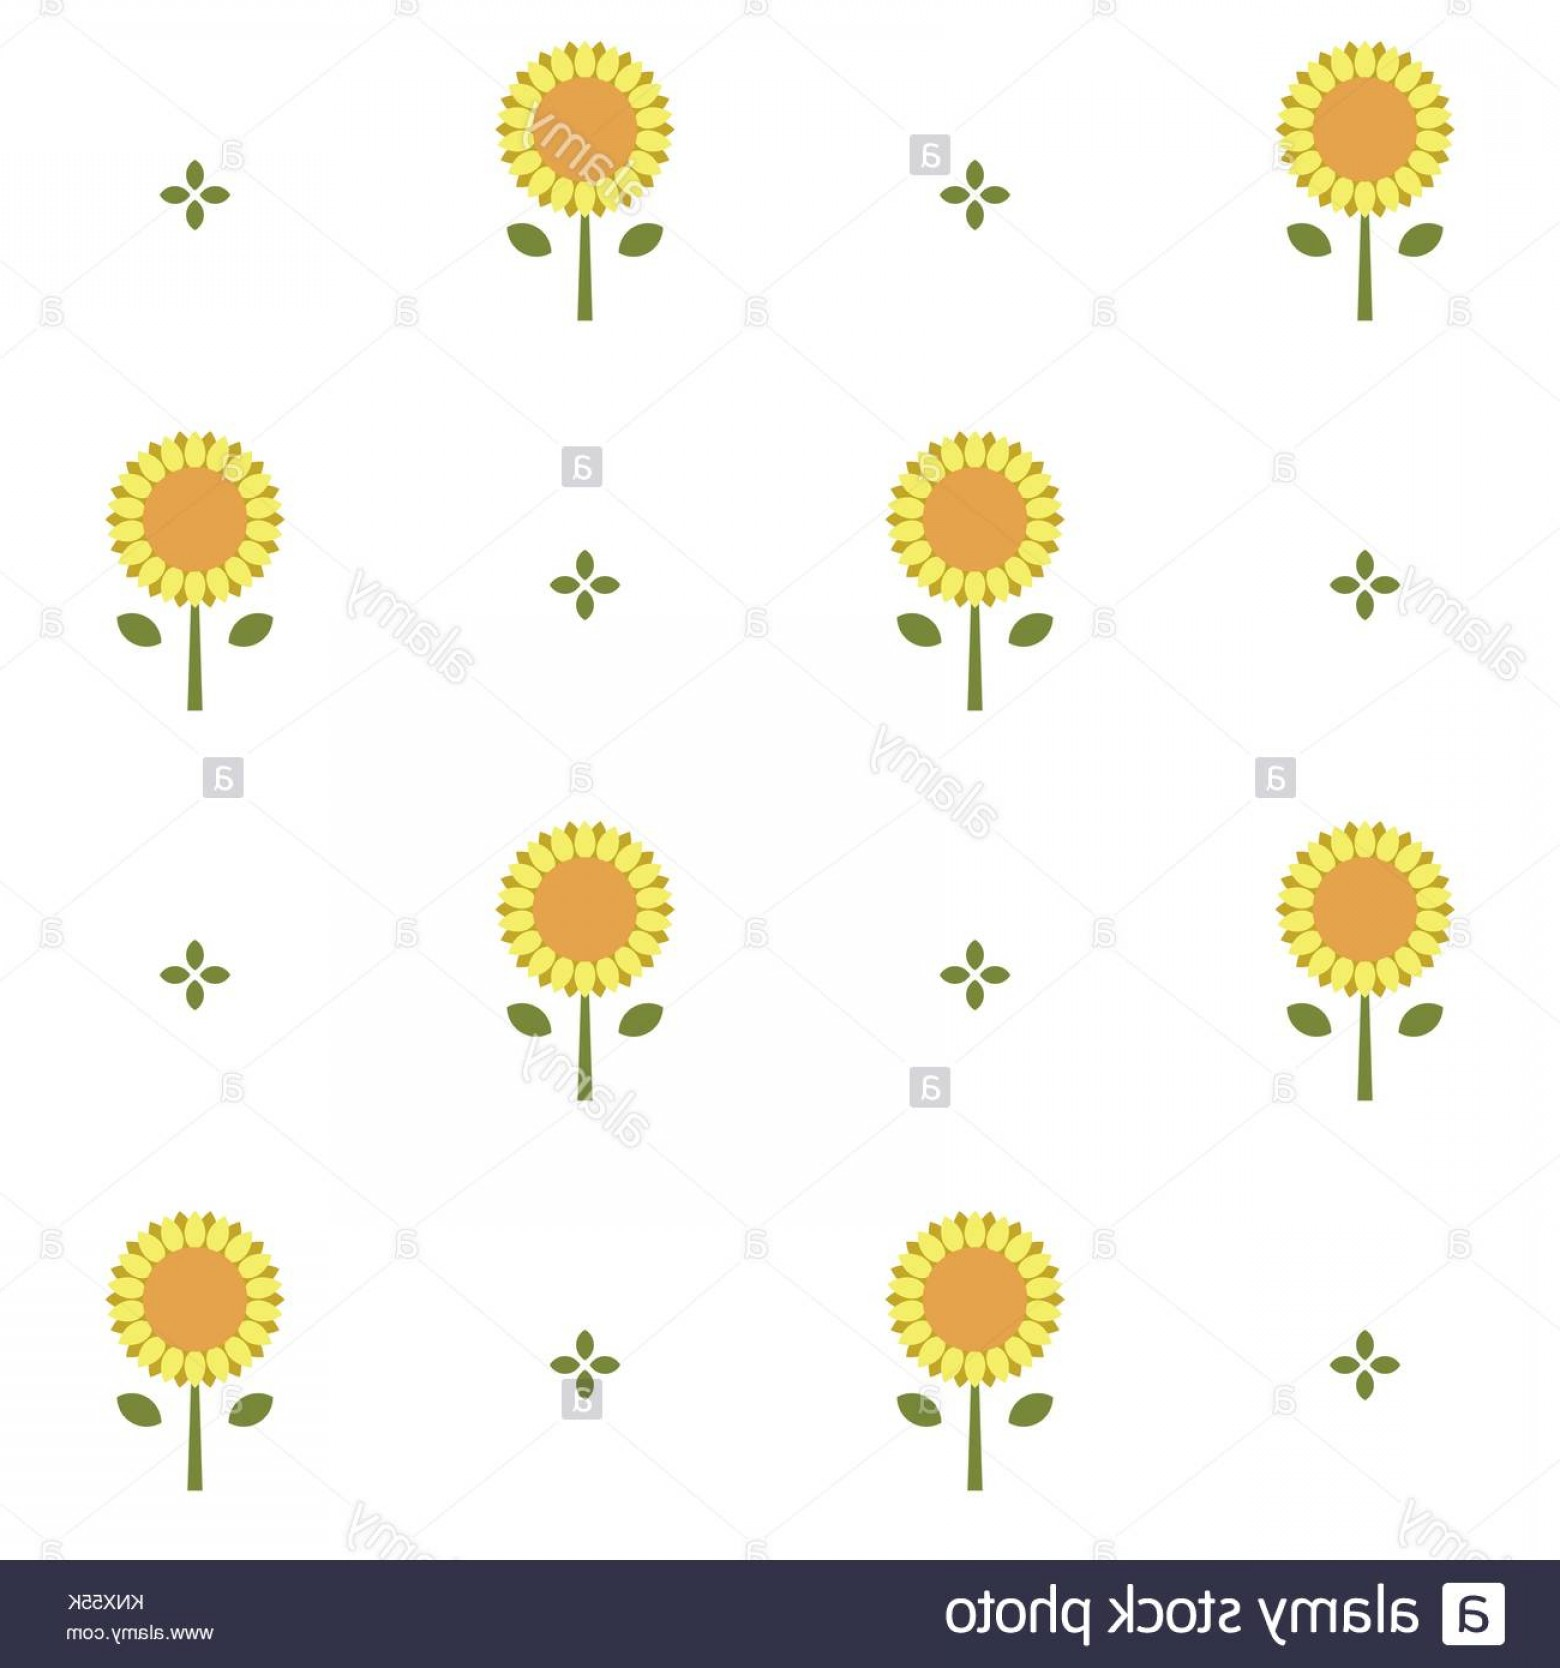 Sunflower Vector Pattern: Stock Photo Seamless Vector Pattern With Sunflowers In White Background Geometric